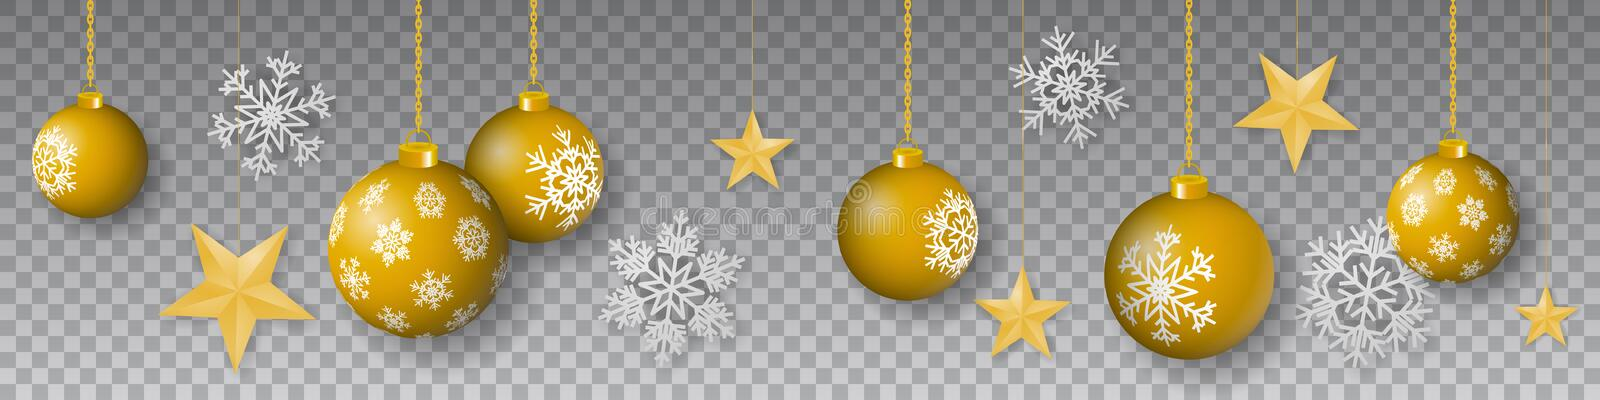 Seamless winter vector with hanging gold colored decorated christmas ornaments, stars and snowflakes on transparent background vector illustration